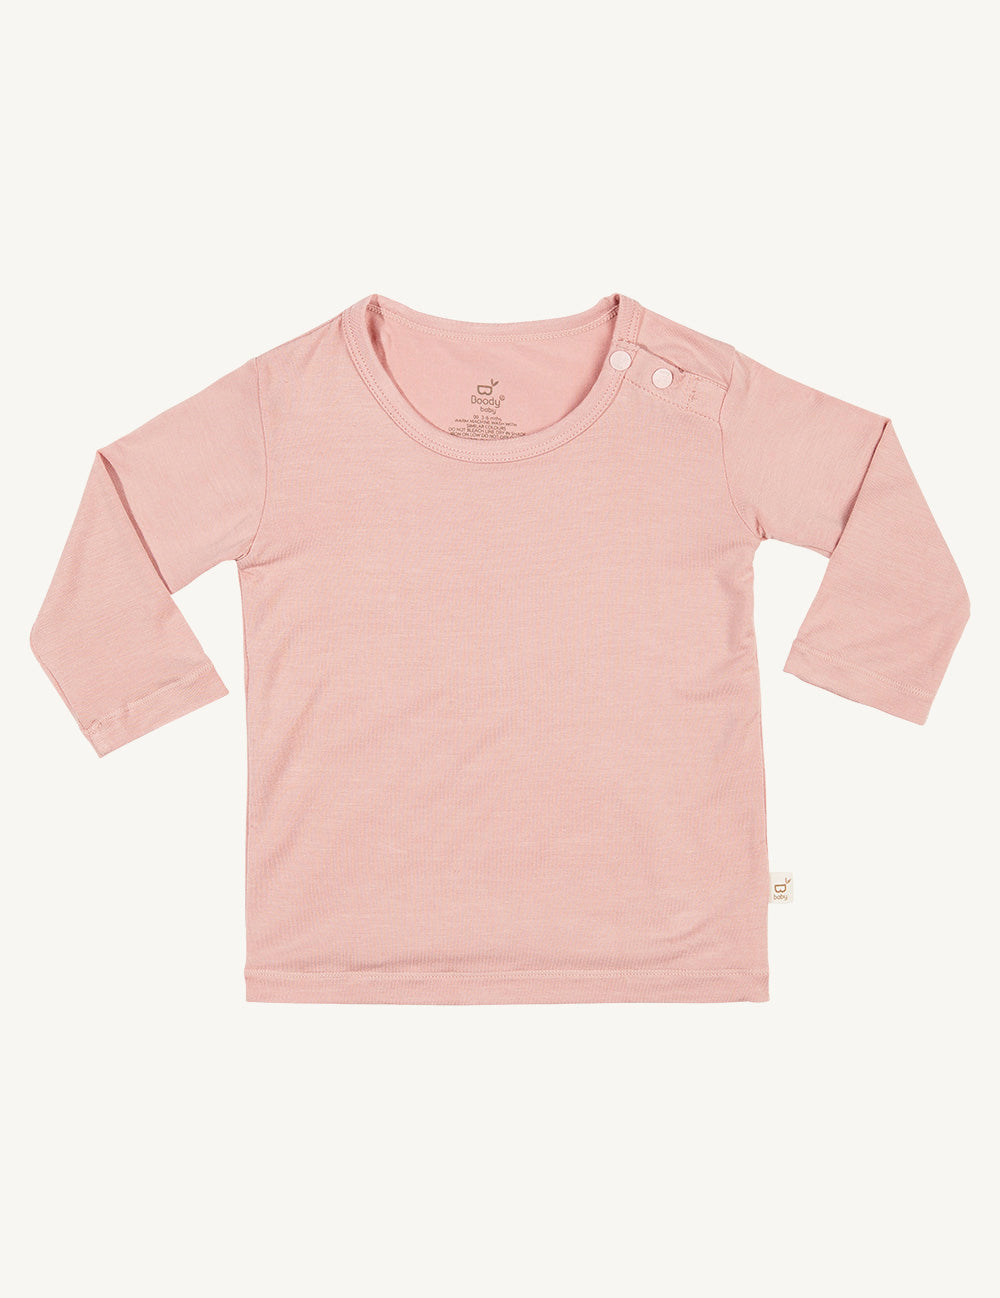 Baby Long Sleeve Top Rose - Boody Baby